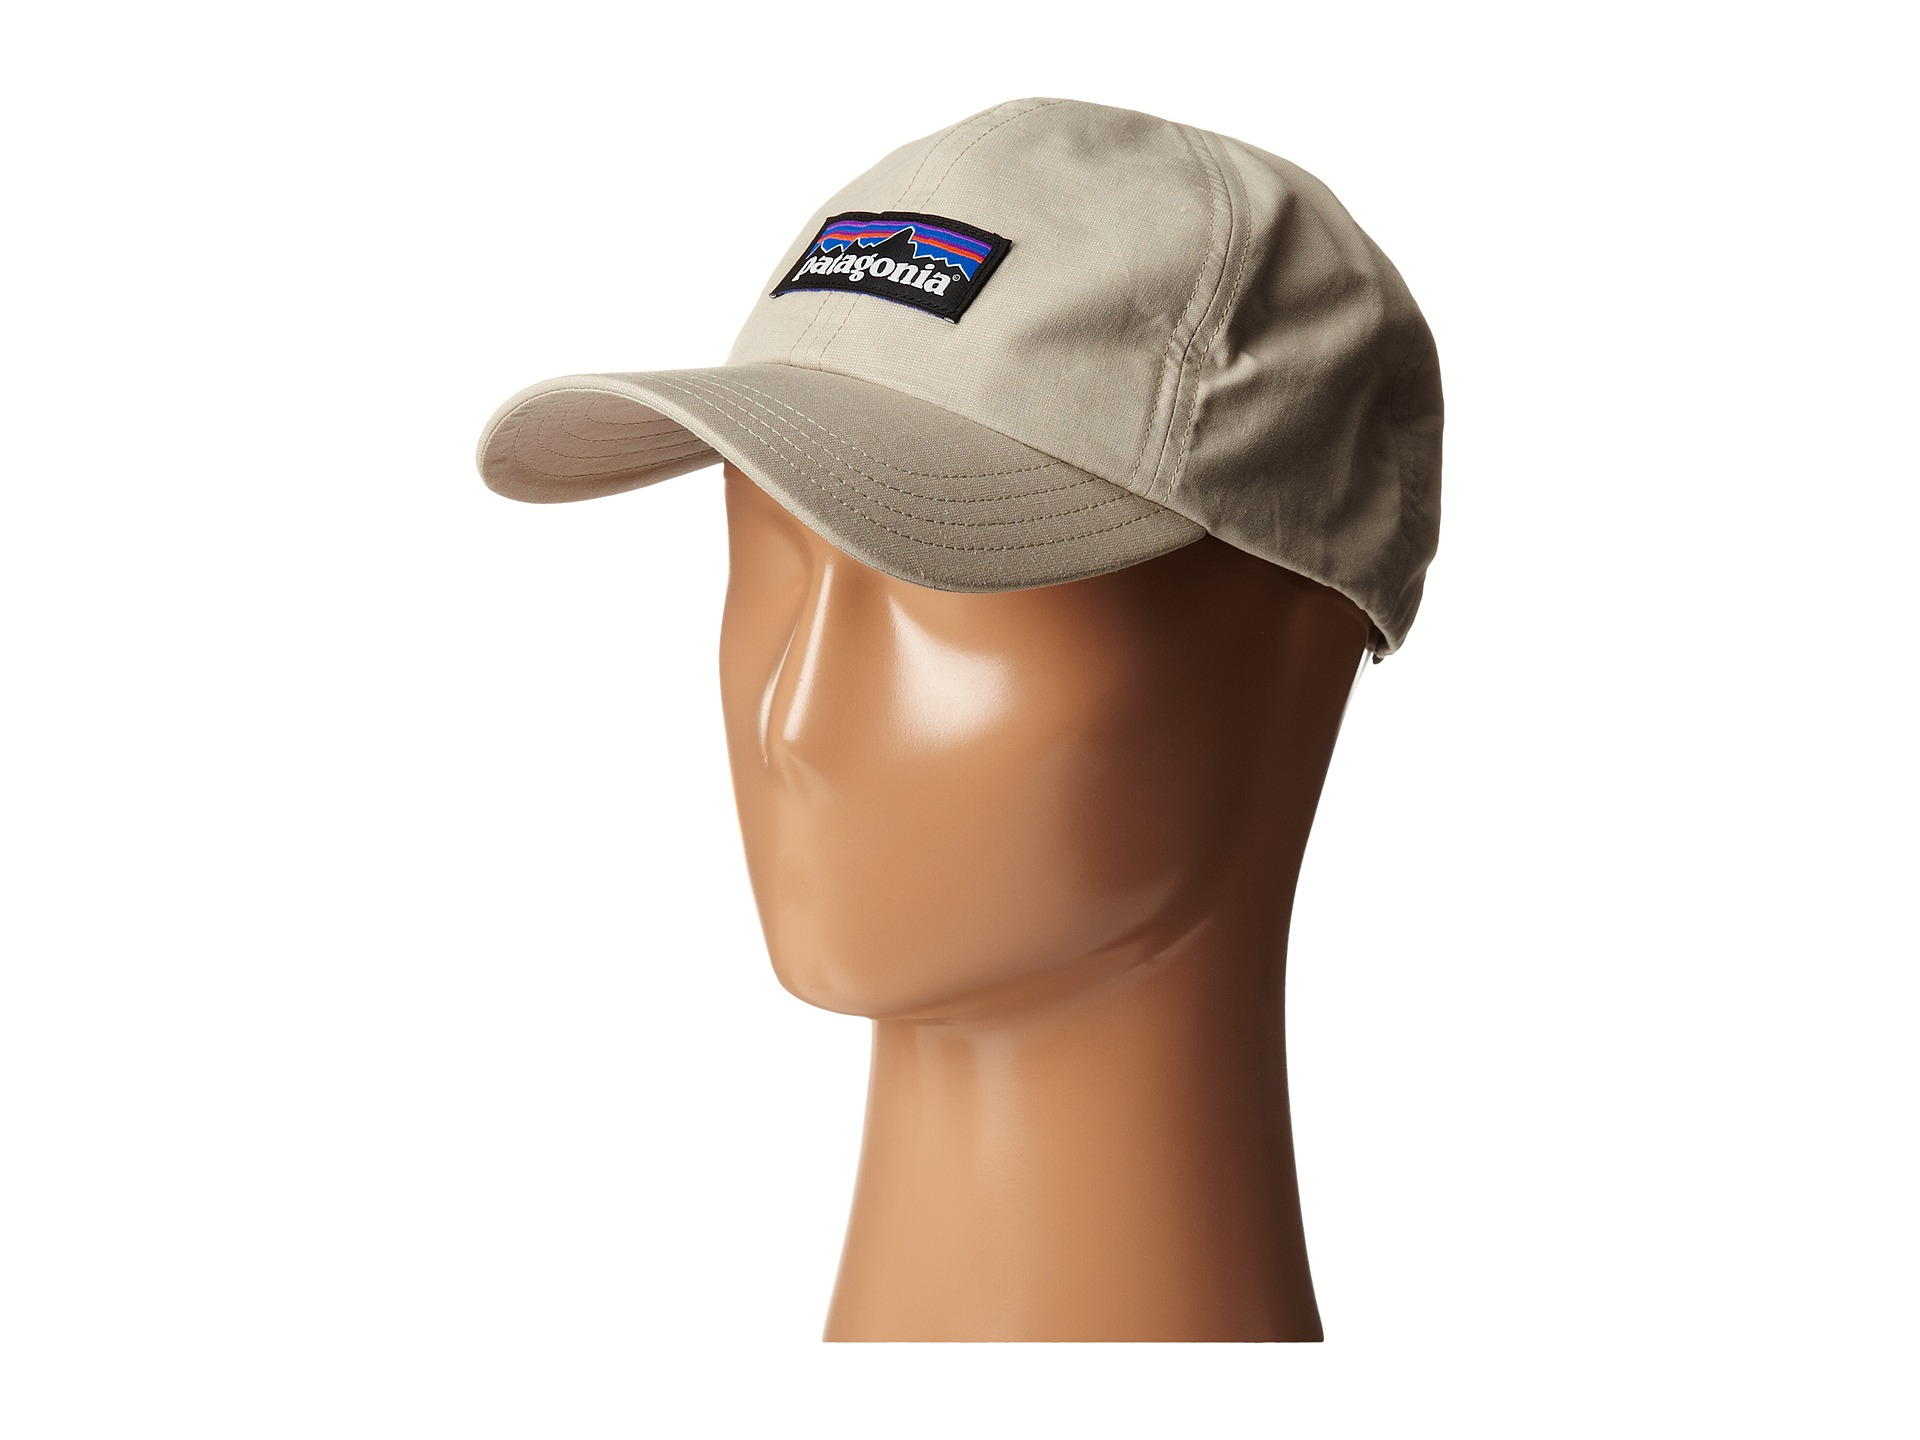 Lyst - Patagonia Fitz Roy P-Label Logo Hat in Natural for Men 66a704a70da6